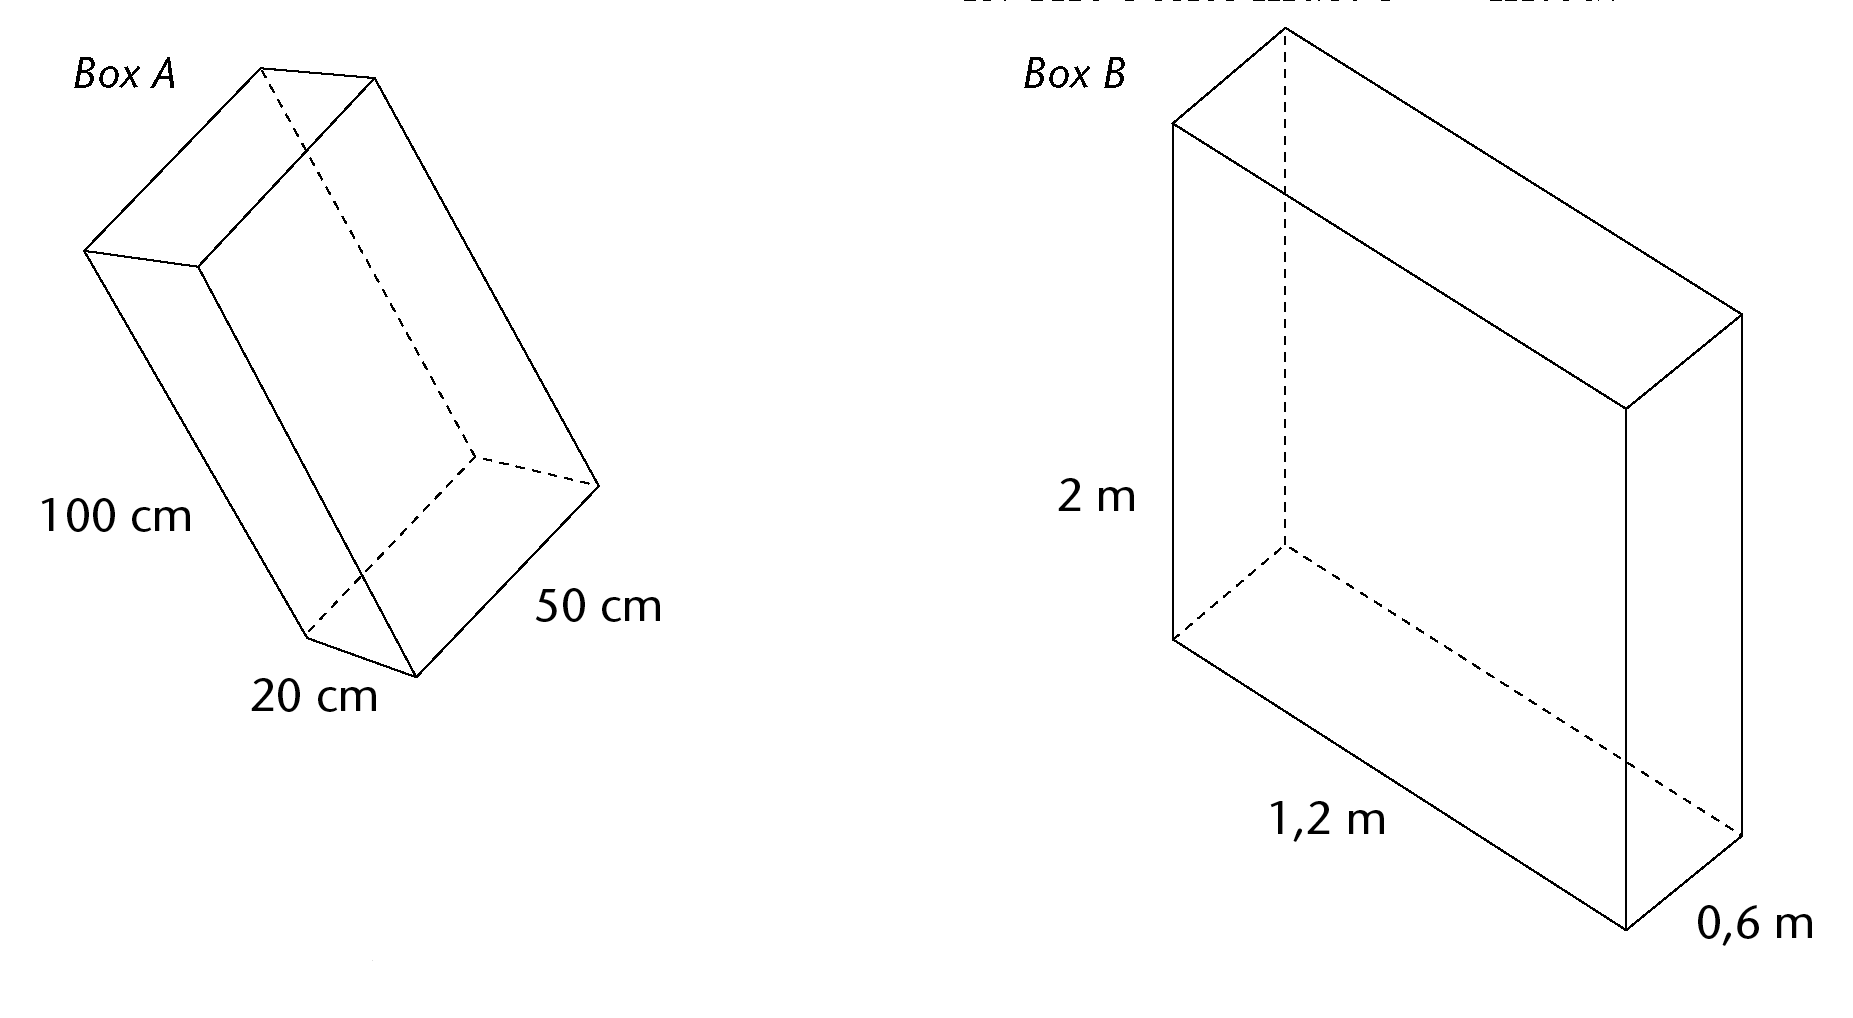 hight resolution of Volume of rectangular prisms and cubes   Surface area and volume of objects    Siyavula